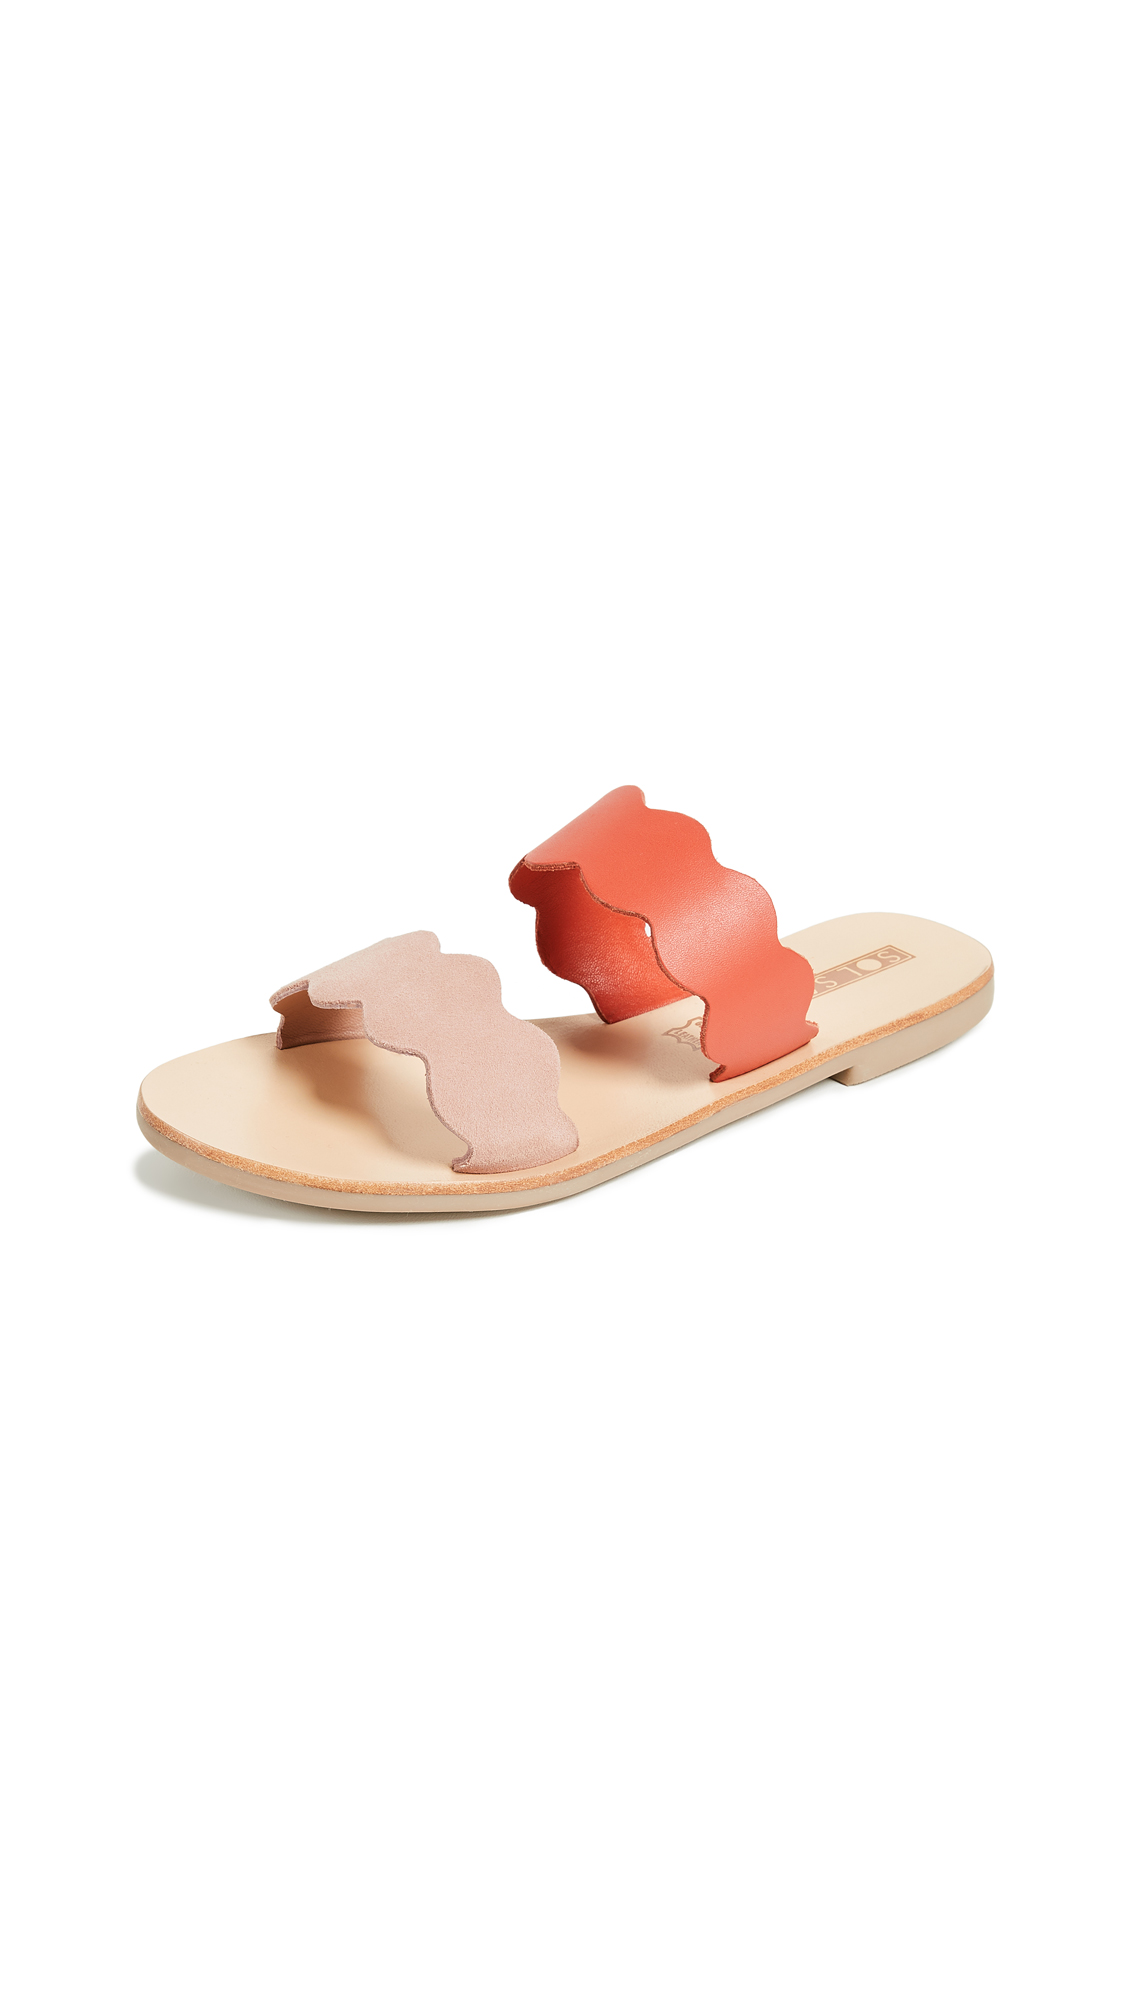 Sol Sana Wave Slide Sandals - Pink/Flame